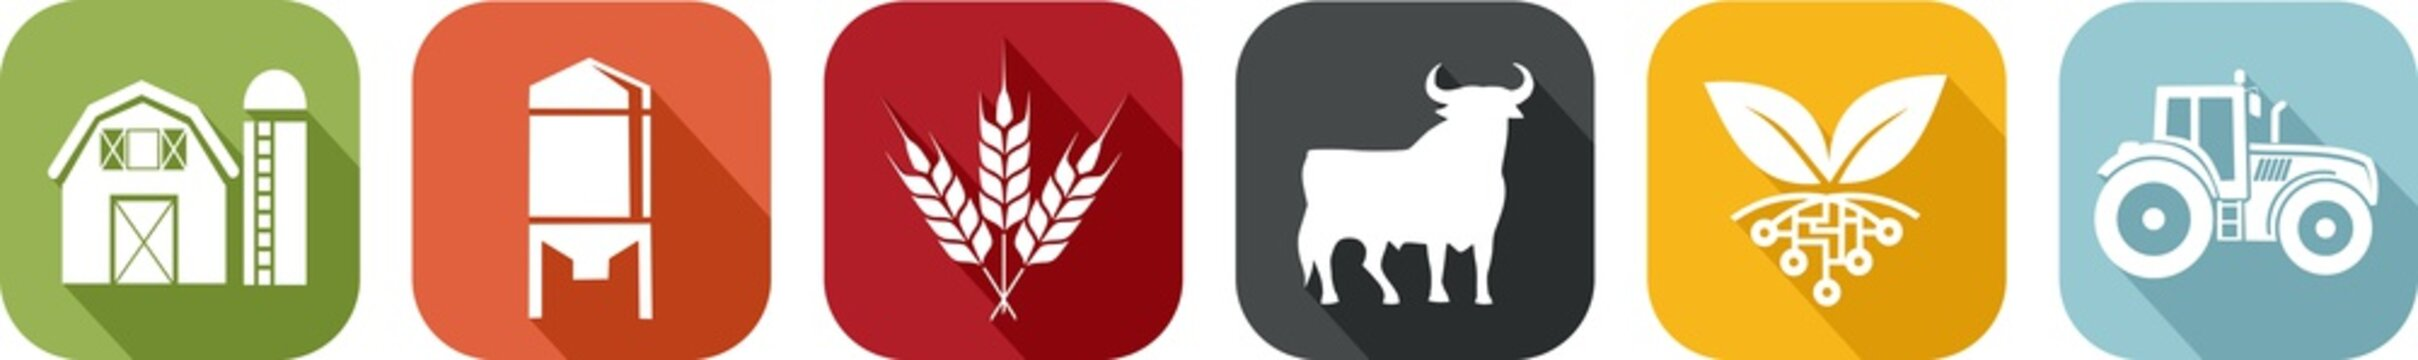 Icon of various symbols of agriculture